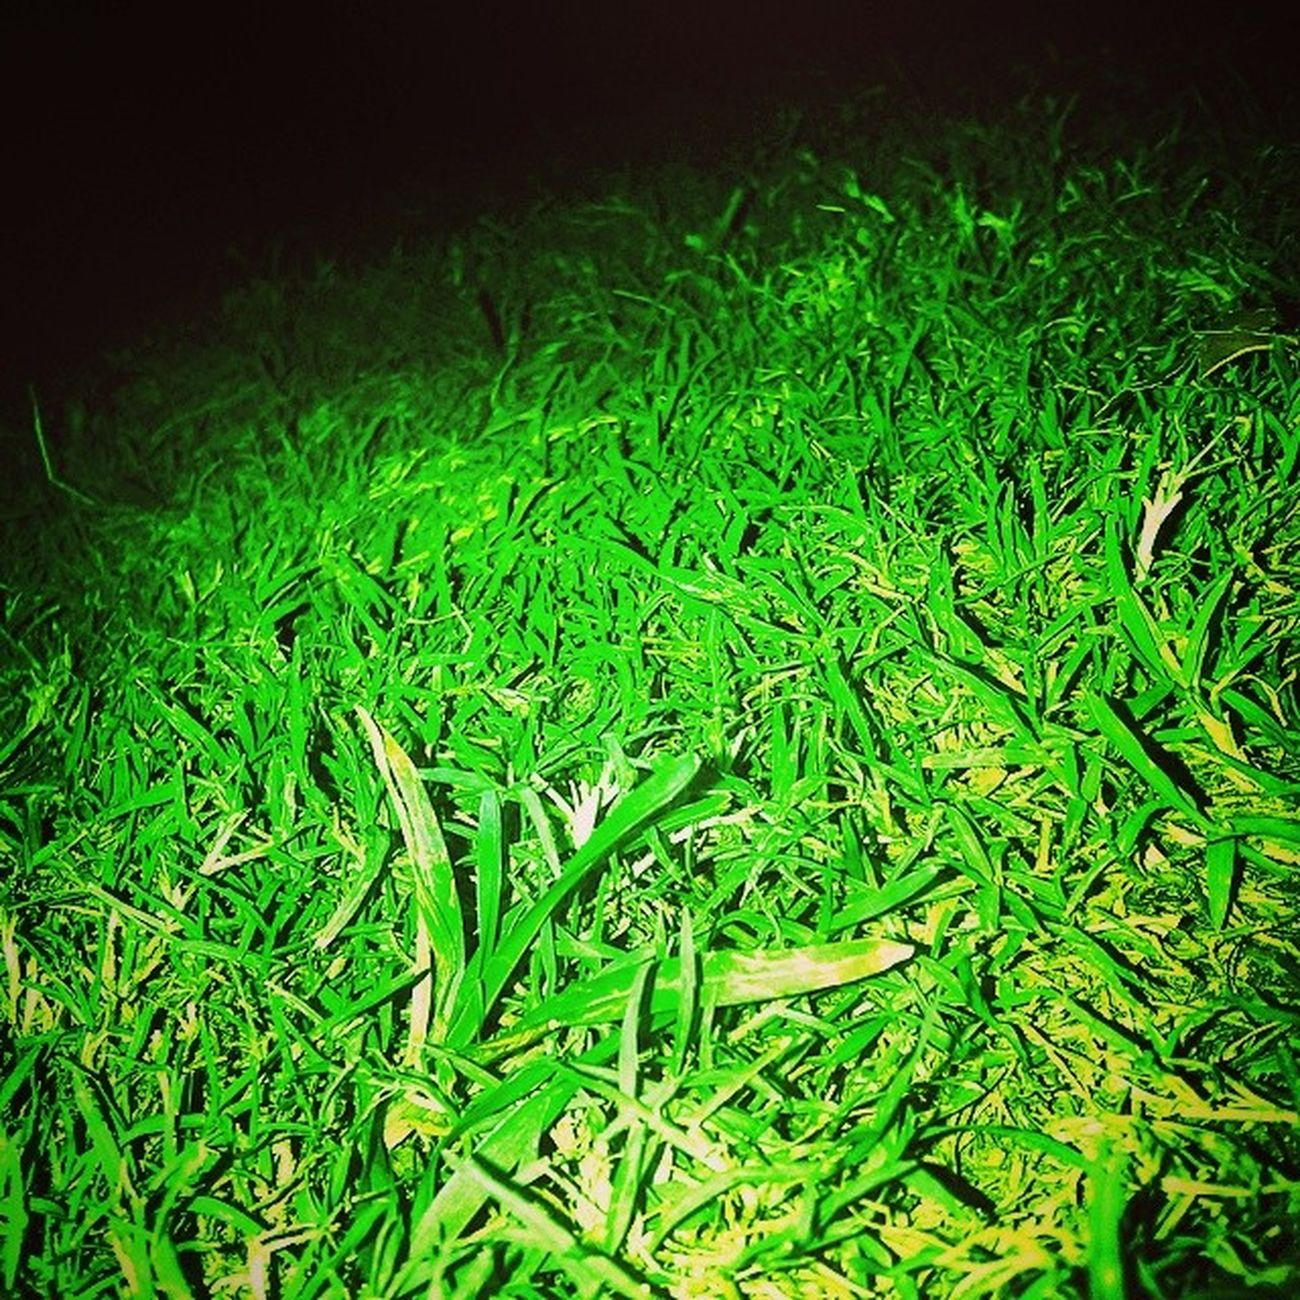 Grass_At_Night Followme Followback Edited_ExtraDark